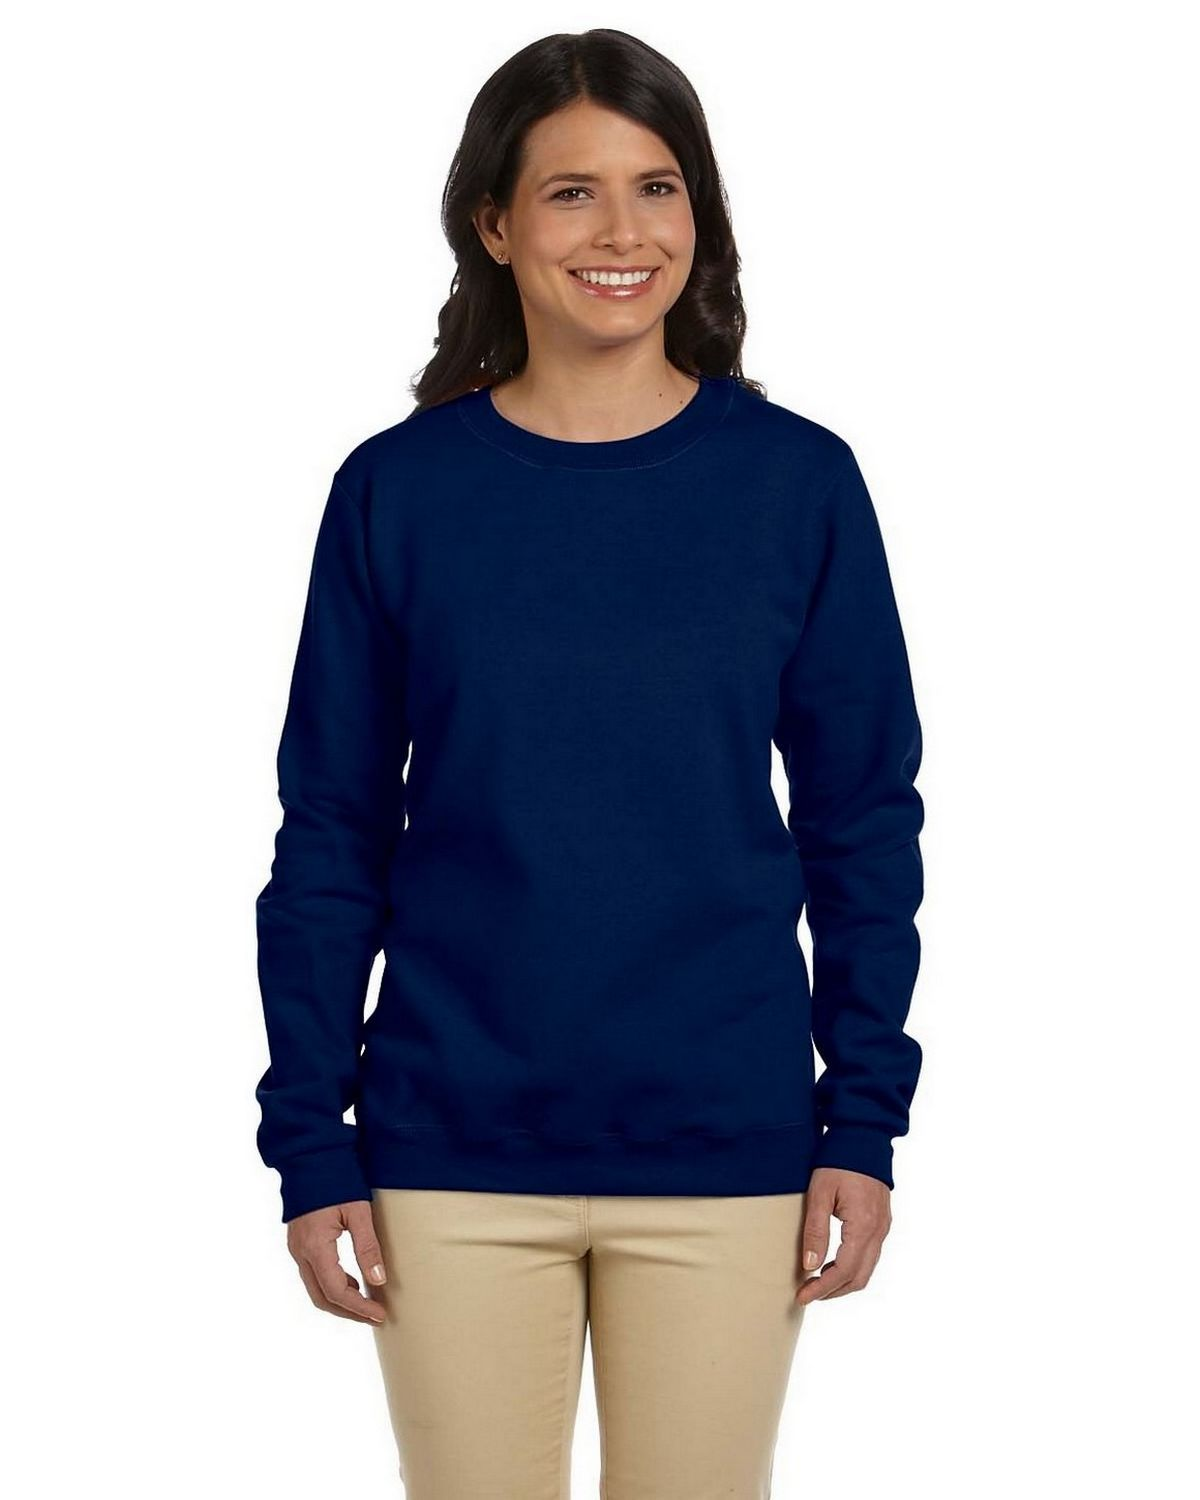 Gildan G180FL Ladies Heavy Blend Fleece Crew - Navy - S G180FL